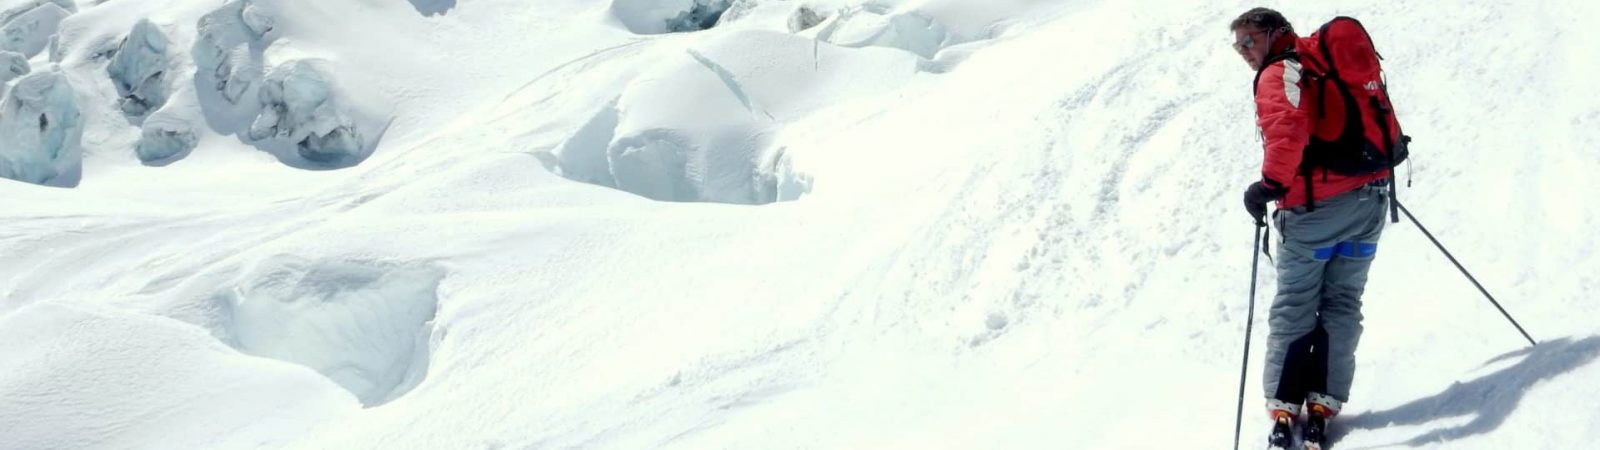 Guided off-piste skiing in Vallee Blanche (Aiguille du Midi)